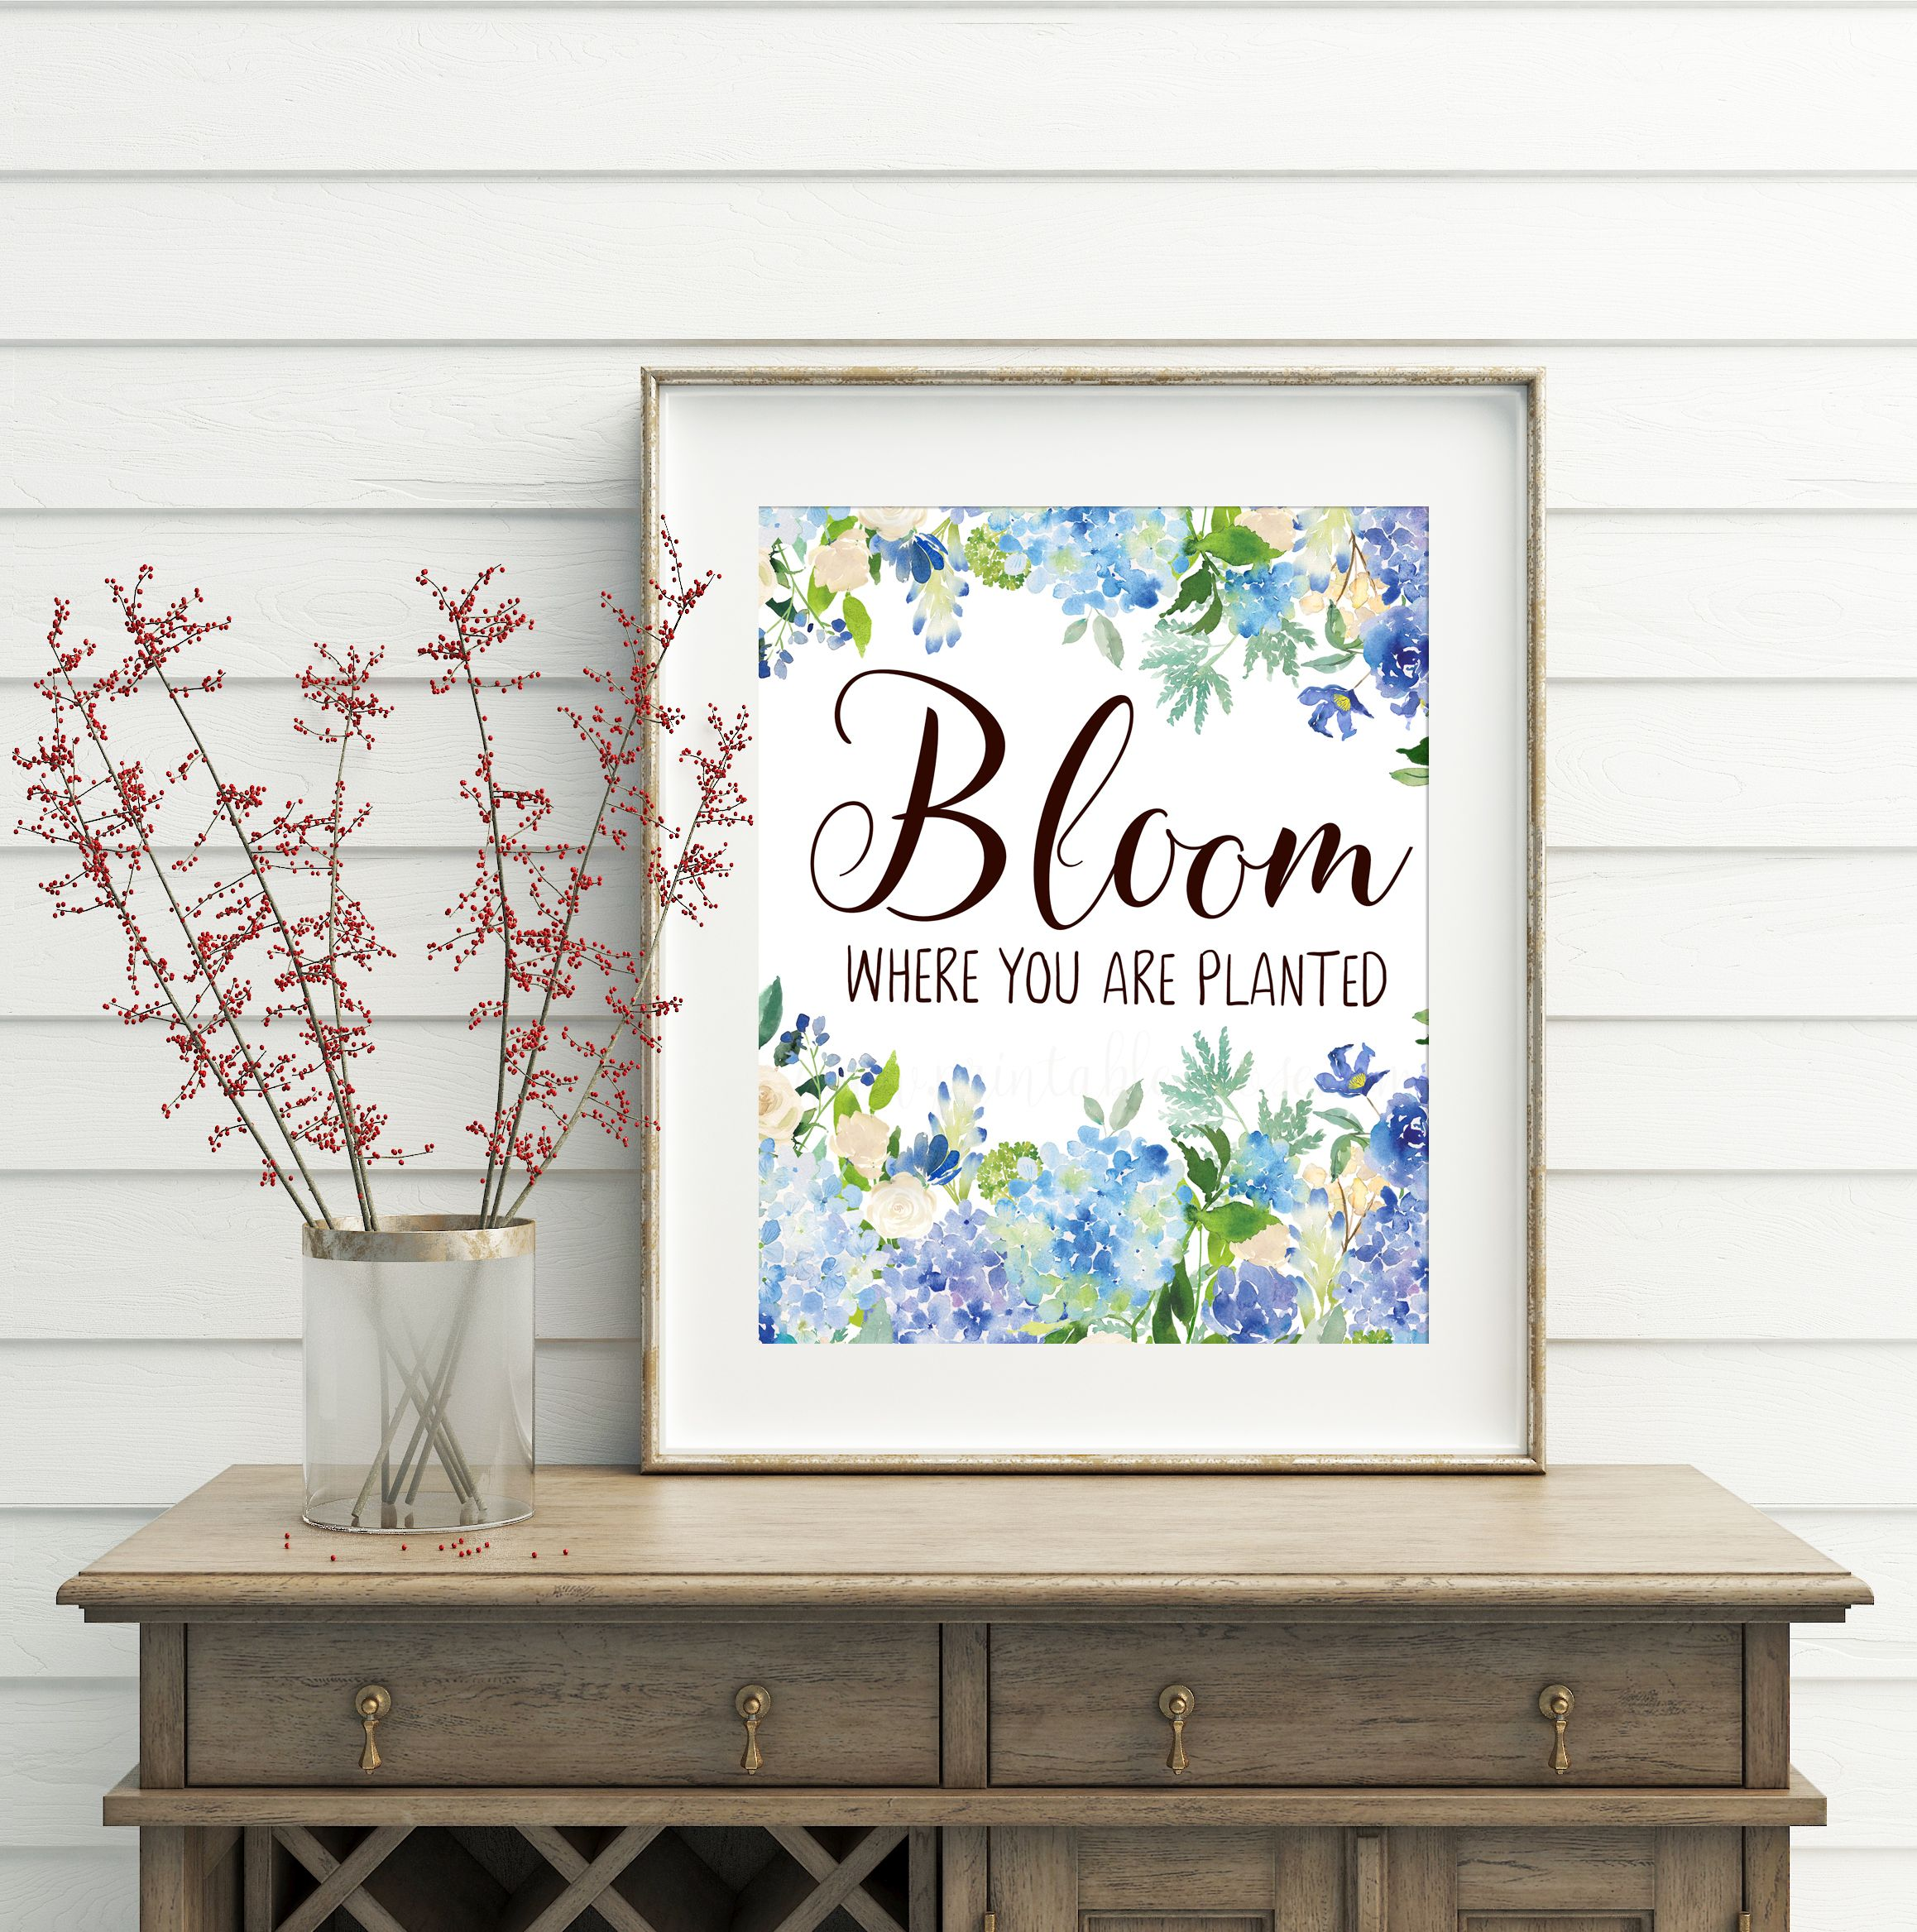 Bloom Where You Are Planted Printable Quotes Flower Wall Art Motivational Prints Inspirational Flower Wall Art Office Wall Decor Printable Wall Art Quotes